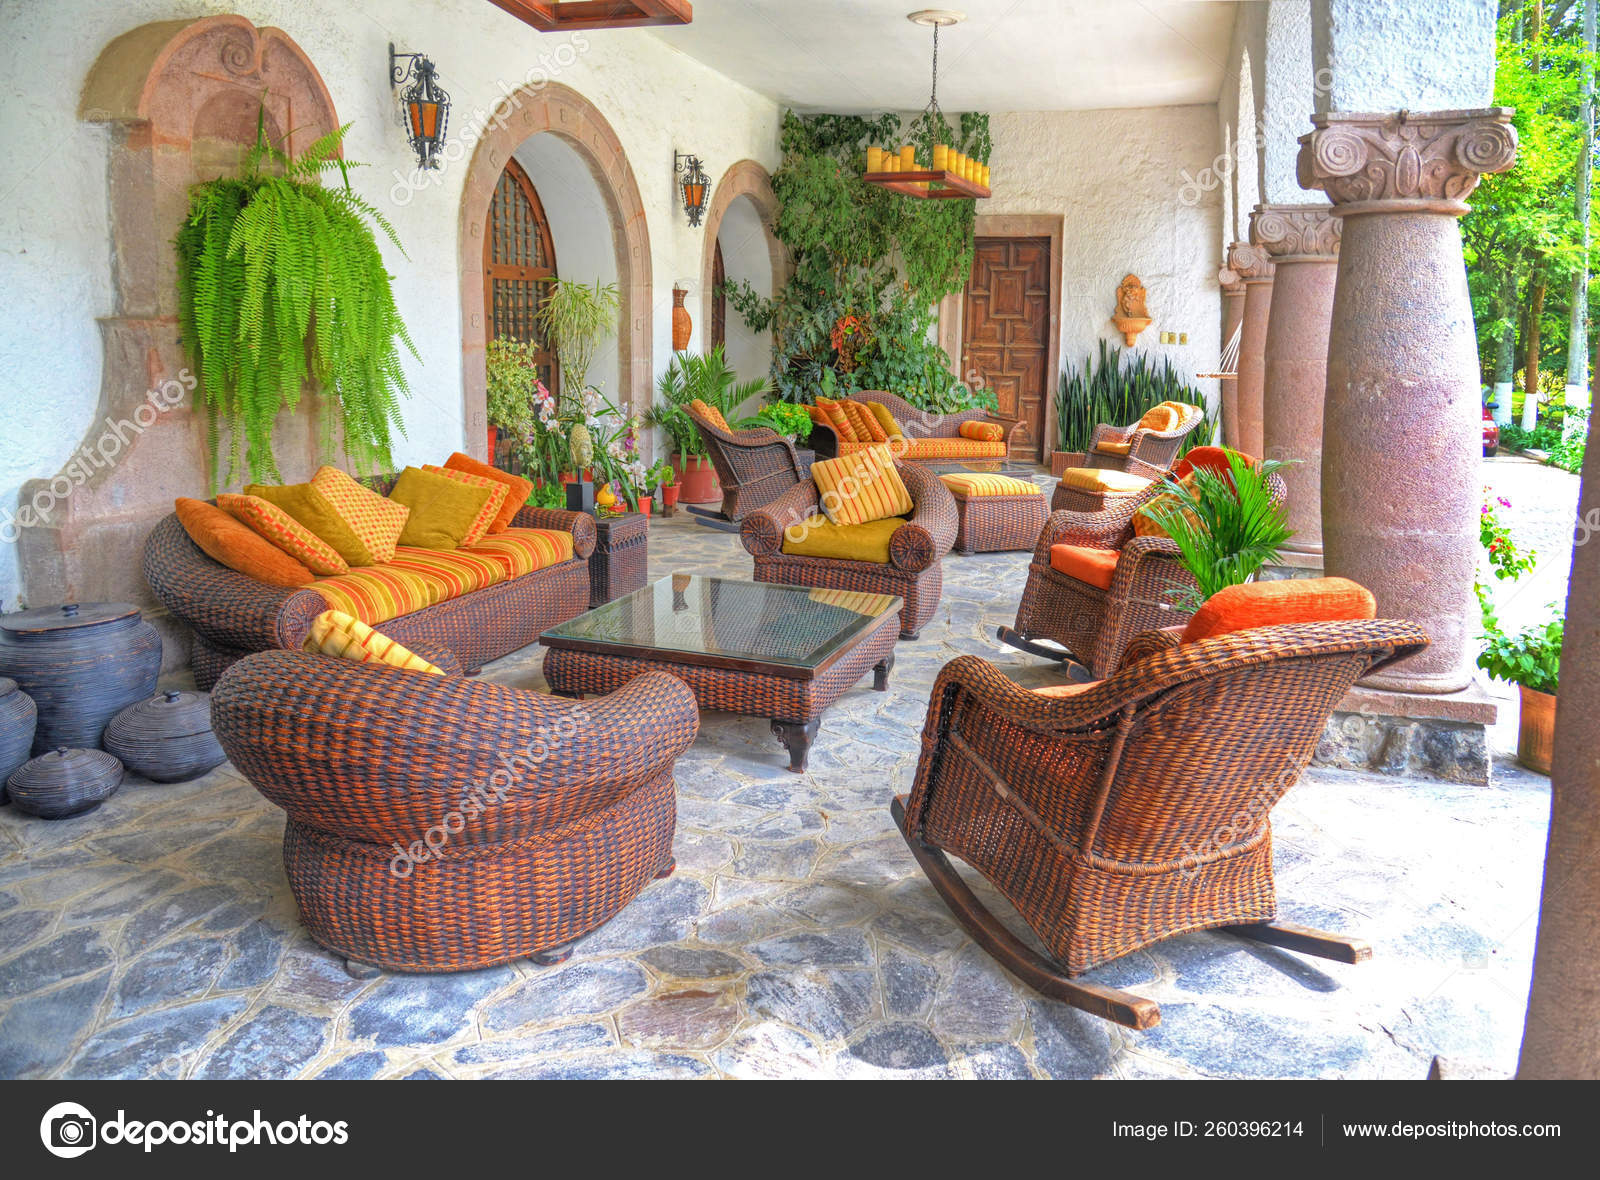 Surprising Outdoor Sitting Room Chairs Seats Couches Tables Decorated Uwap Interior Chair Design Uwaporg